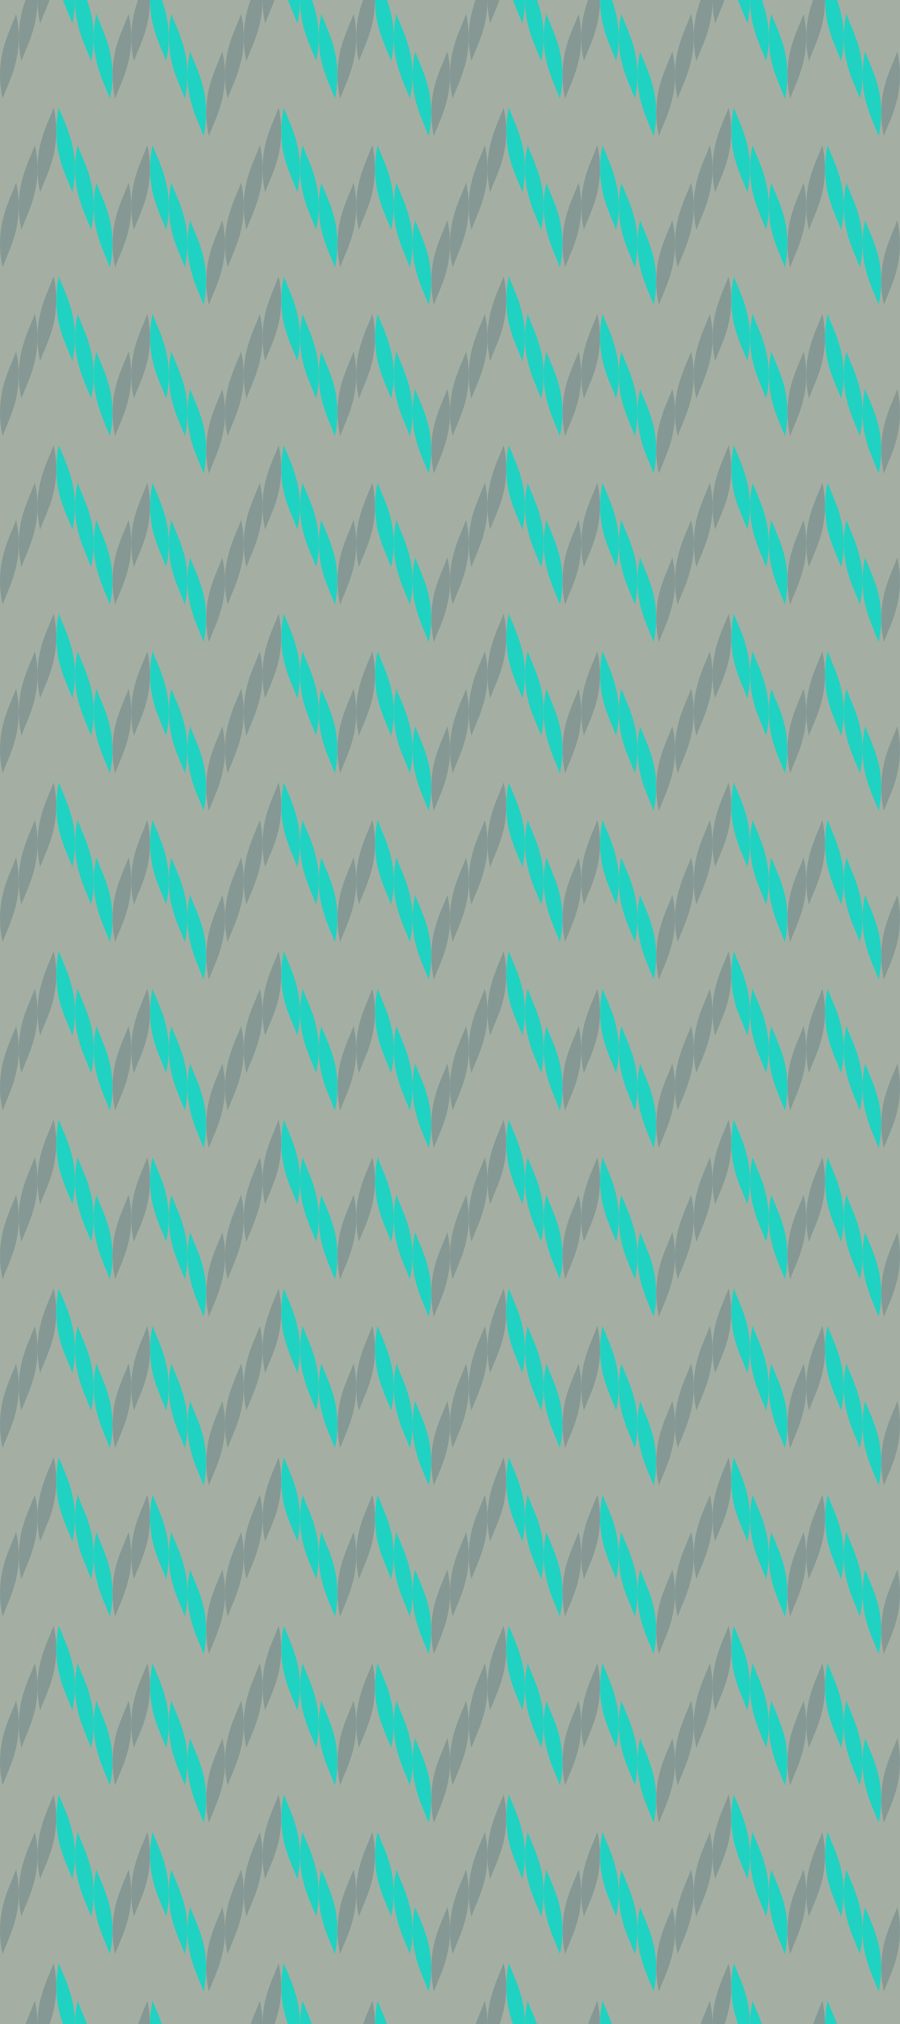 Related Pictures Gray And White Diagonal Stripes Background Seamless 900x2024